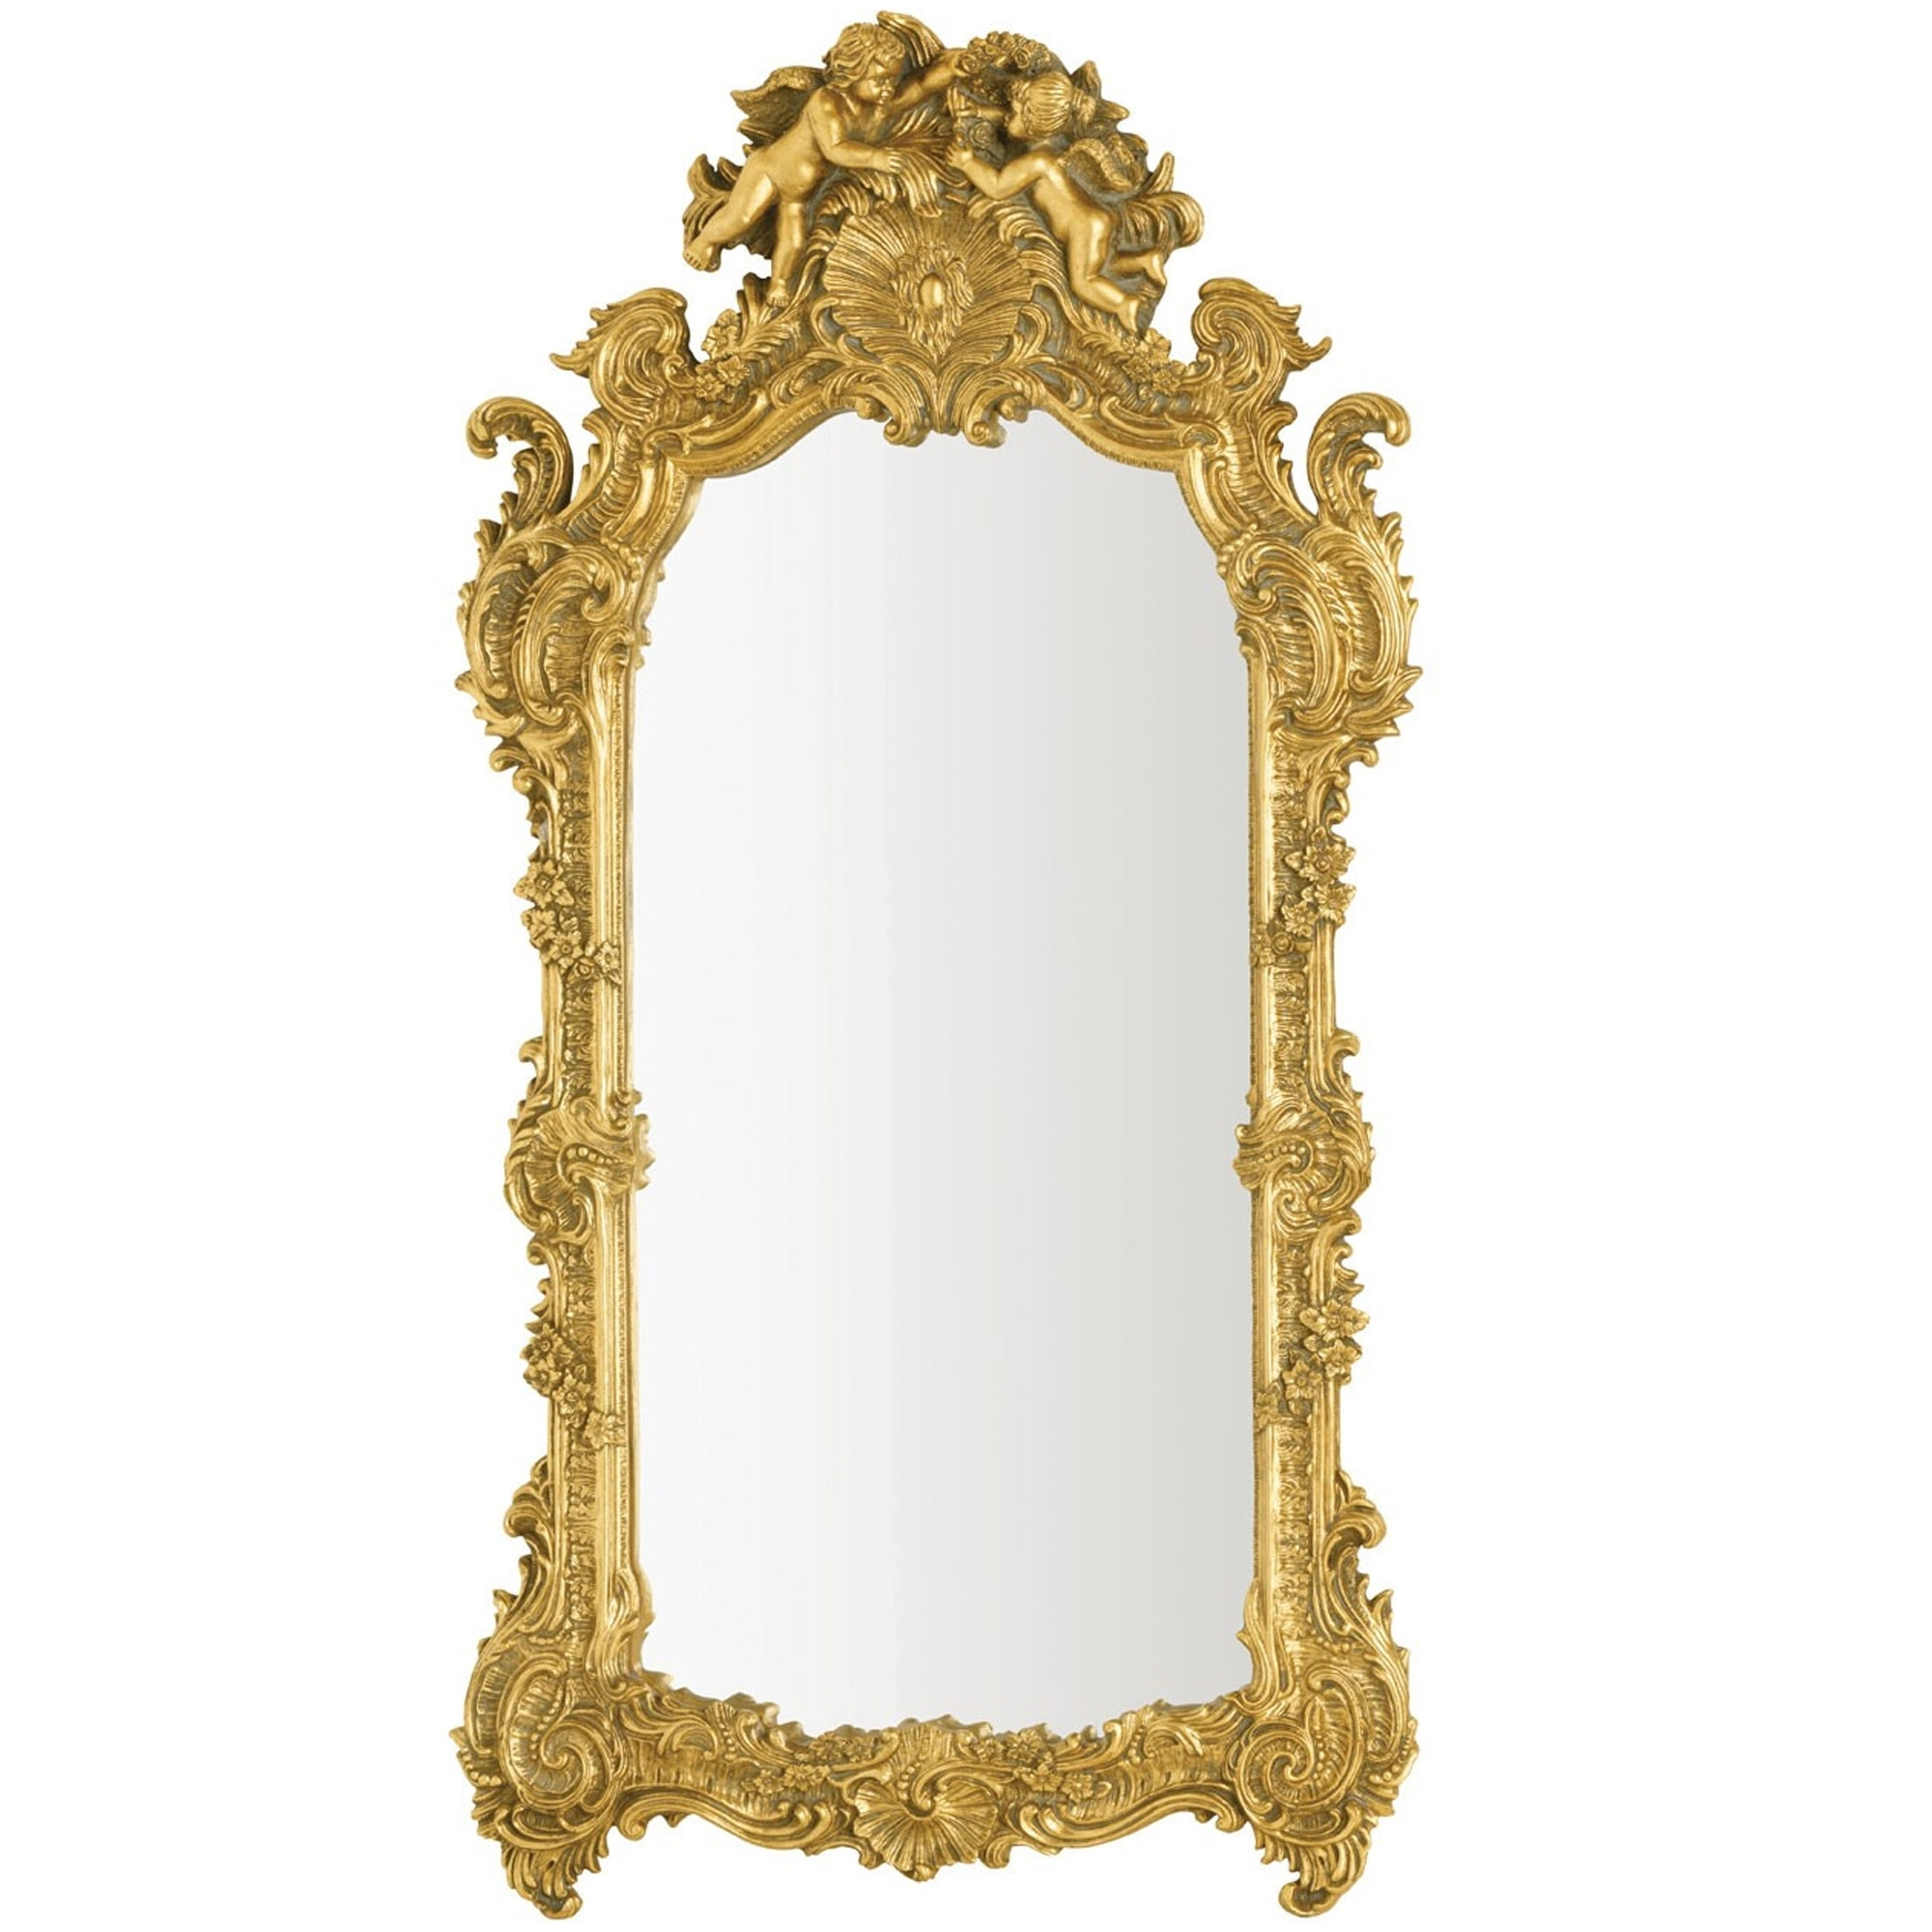 Antique French Style Gold Battista Wall Mirror Bedroom Furniture